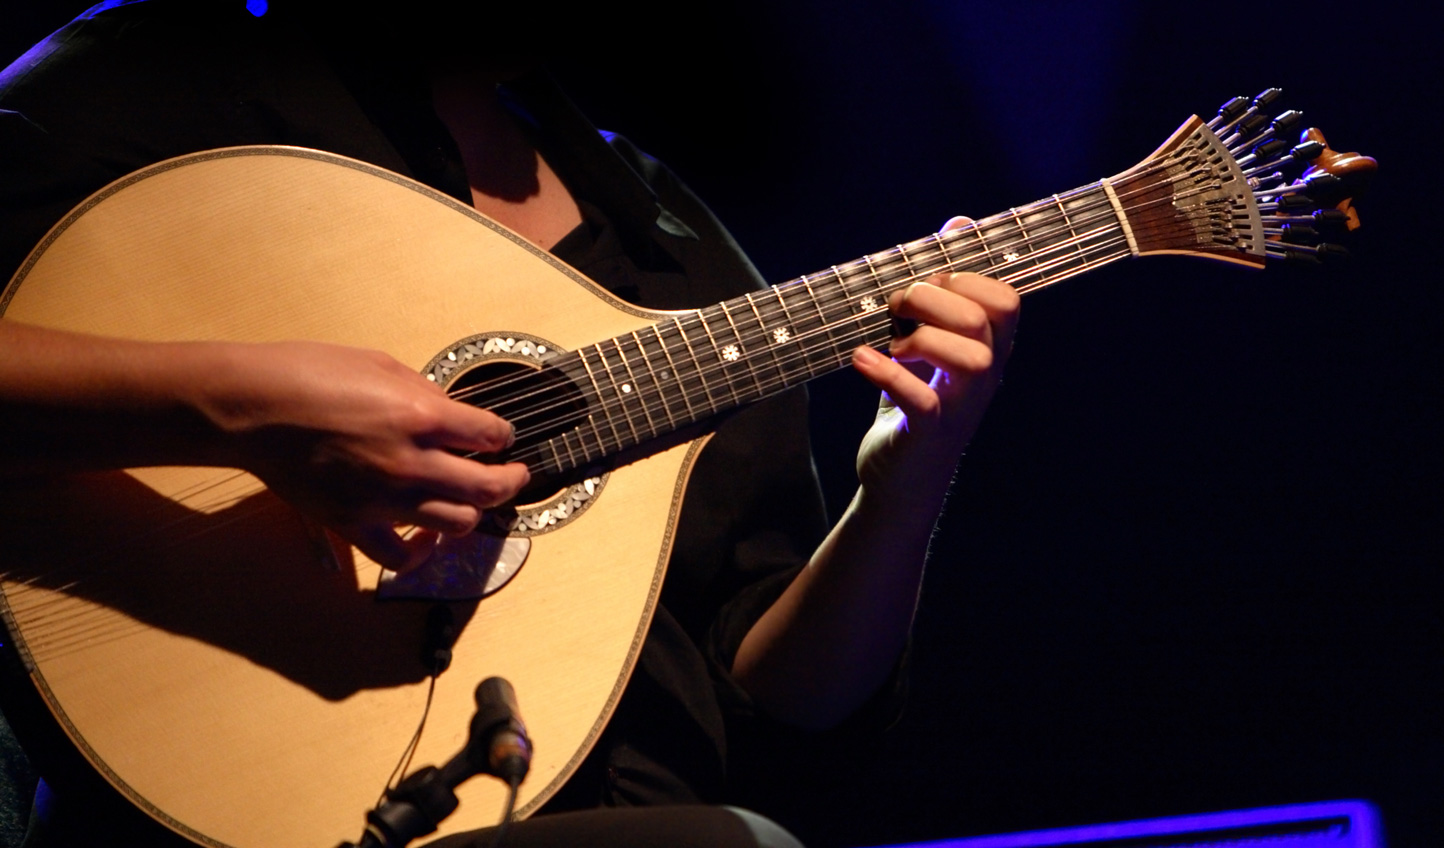 Sway along to the melancholic rhythm of the Fado